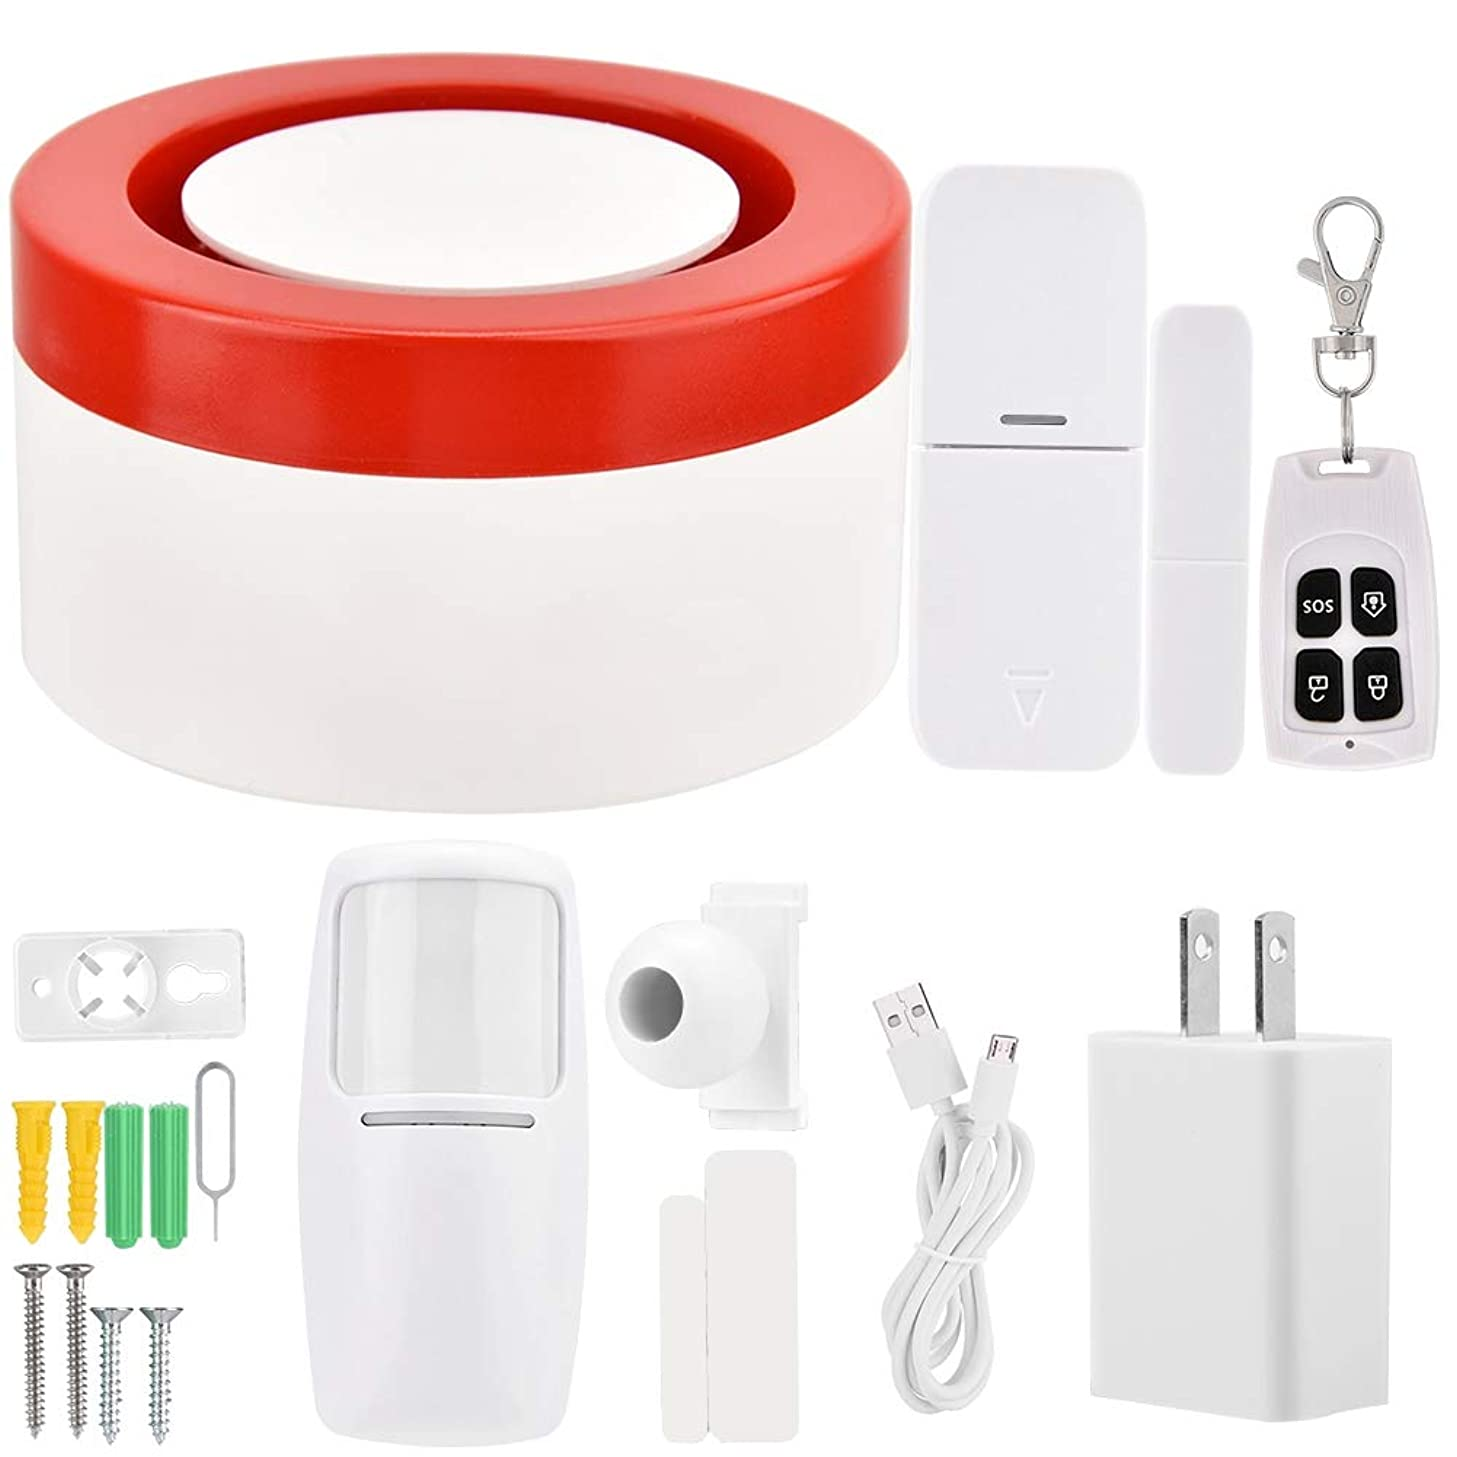 Smart Wireless Alarm System,PIR Motion Sensor WiFi Host & Siren Home Security Anti-Theft Alarm System for Home (US)